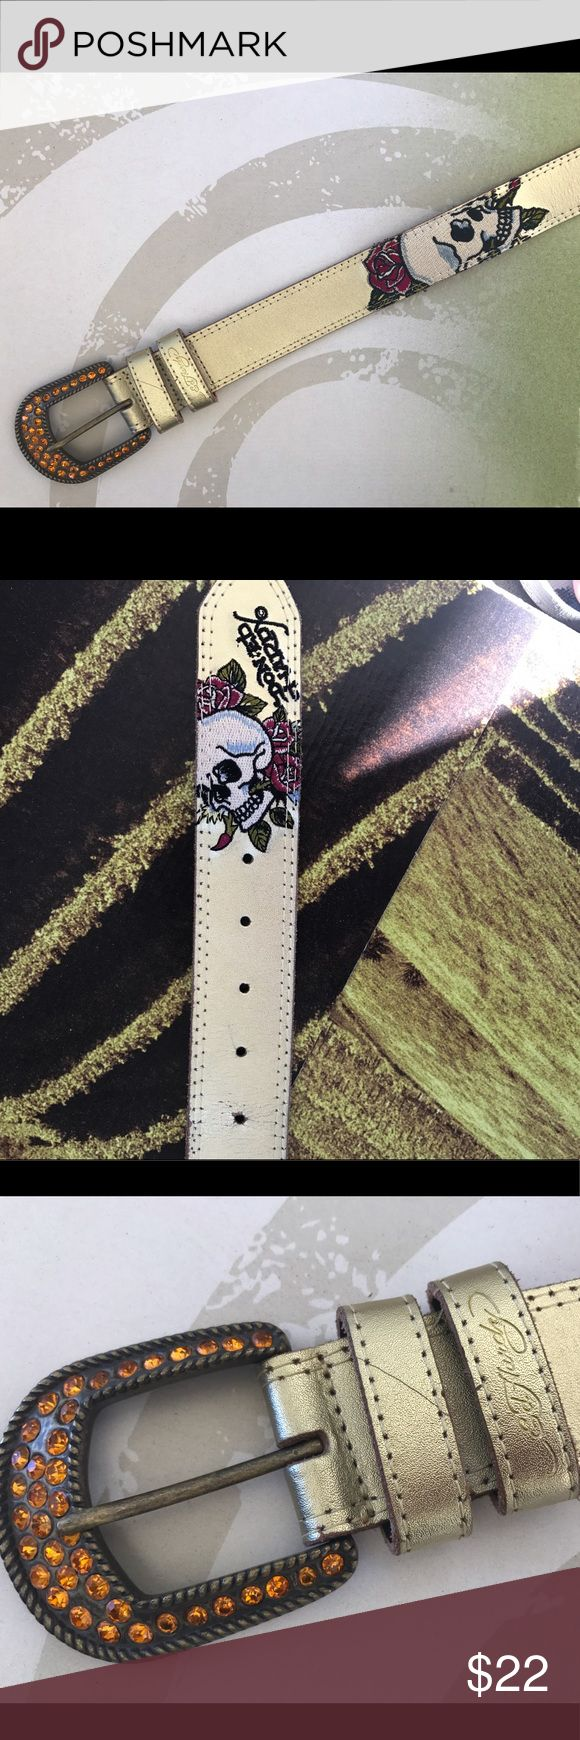 Authentic Ed Hardy distressed leather belt Genuine leather tattoo-style prints. Authentic Ed Hardy belt with orange rhinestones on buckle. Some signs of wear but looks amazing. Ed Hardy Accessories Belts